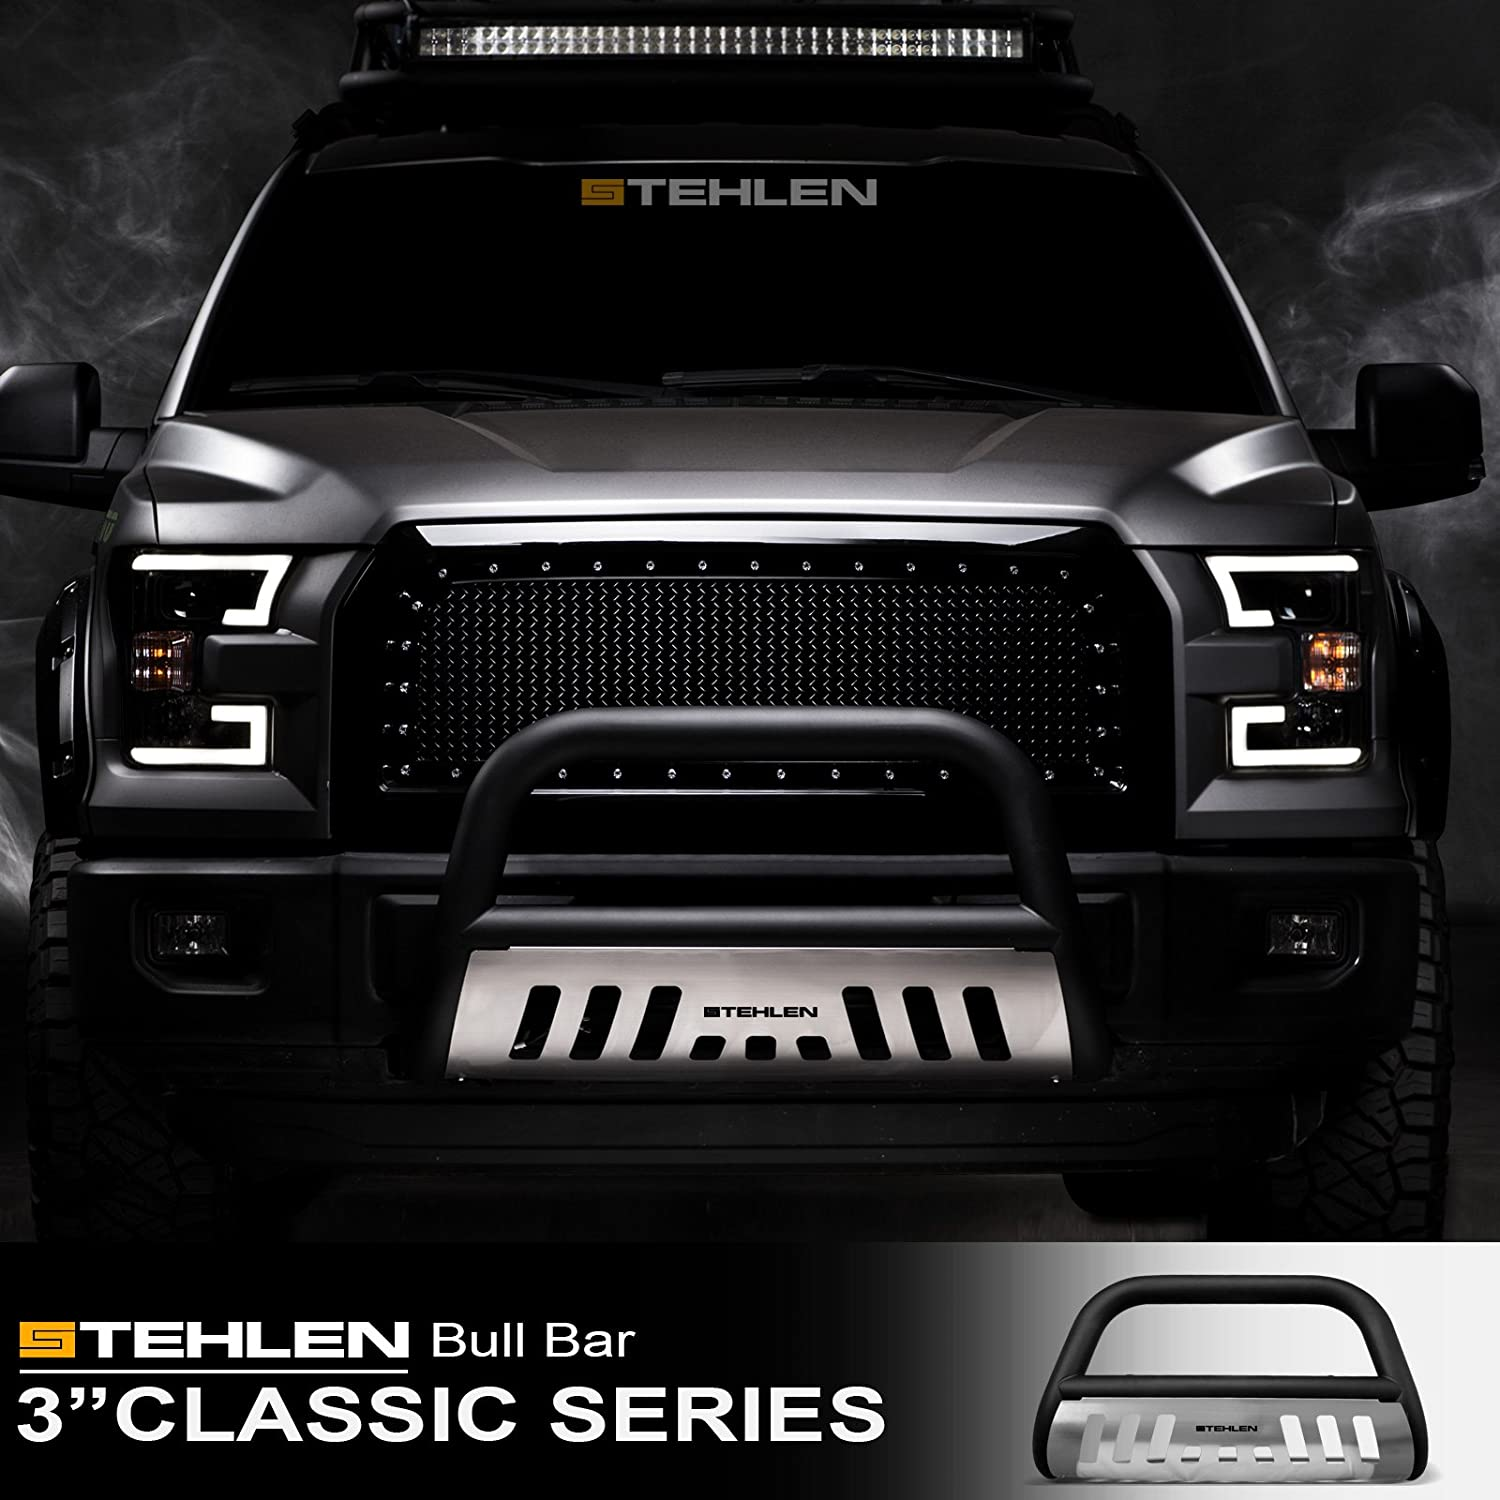 Black For 98-11 Ford Ranger Stehlen 714937182165 3 Classic Series Bull Bar